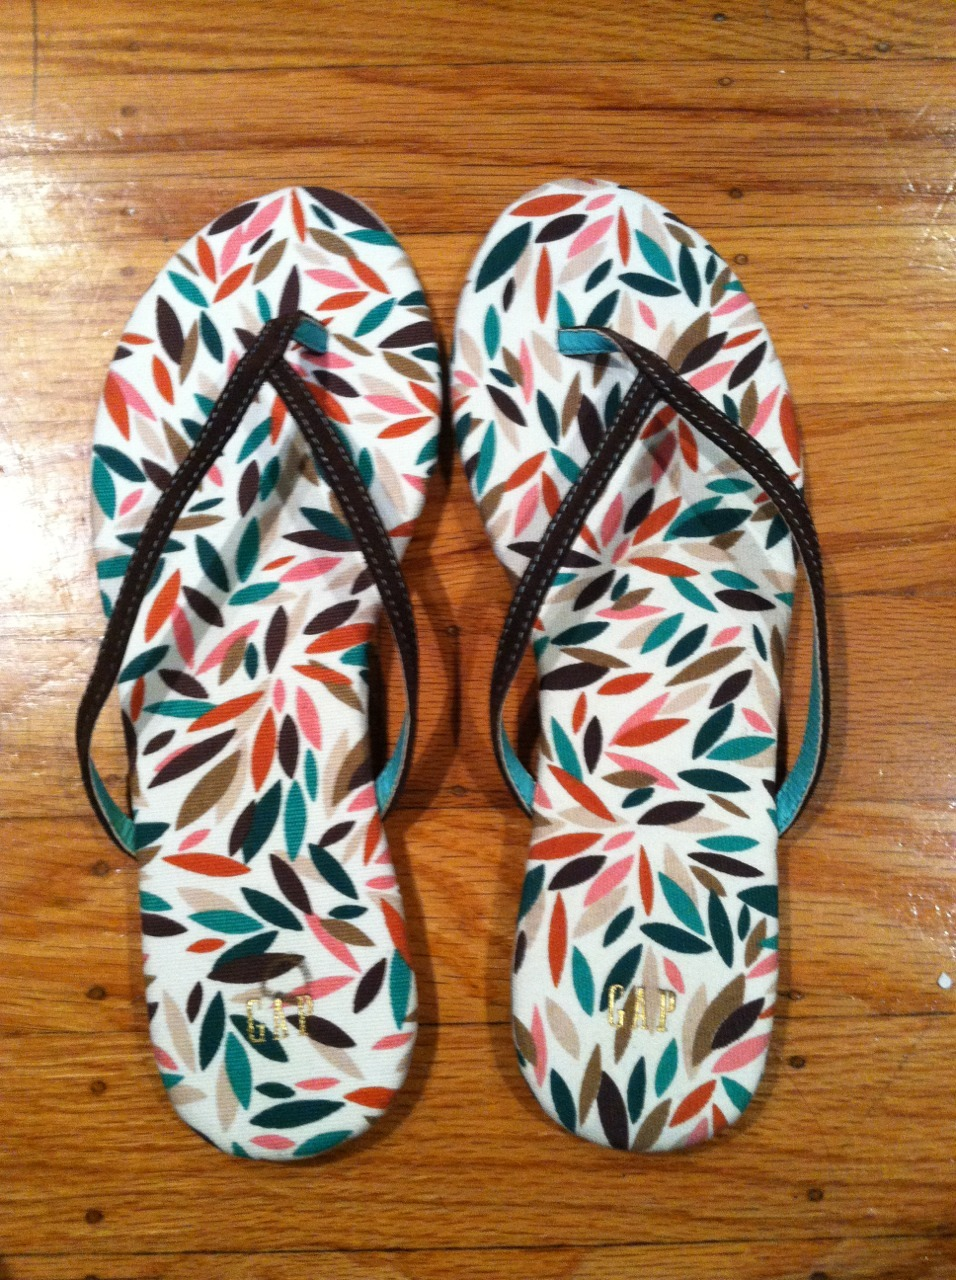 A box filled with early birthday presents arrived today and these cute sandals were the first thing that caught my eye. :) They've got a sturdy wooden bottom with a tiny heart-shaped heel and the fabric on top feels good on bare feet. Love the pattern too! Now I really want warm weather to reach this foggy city!